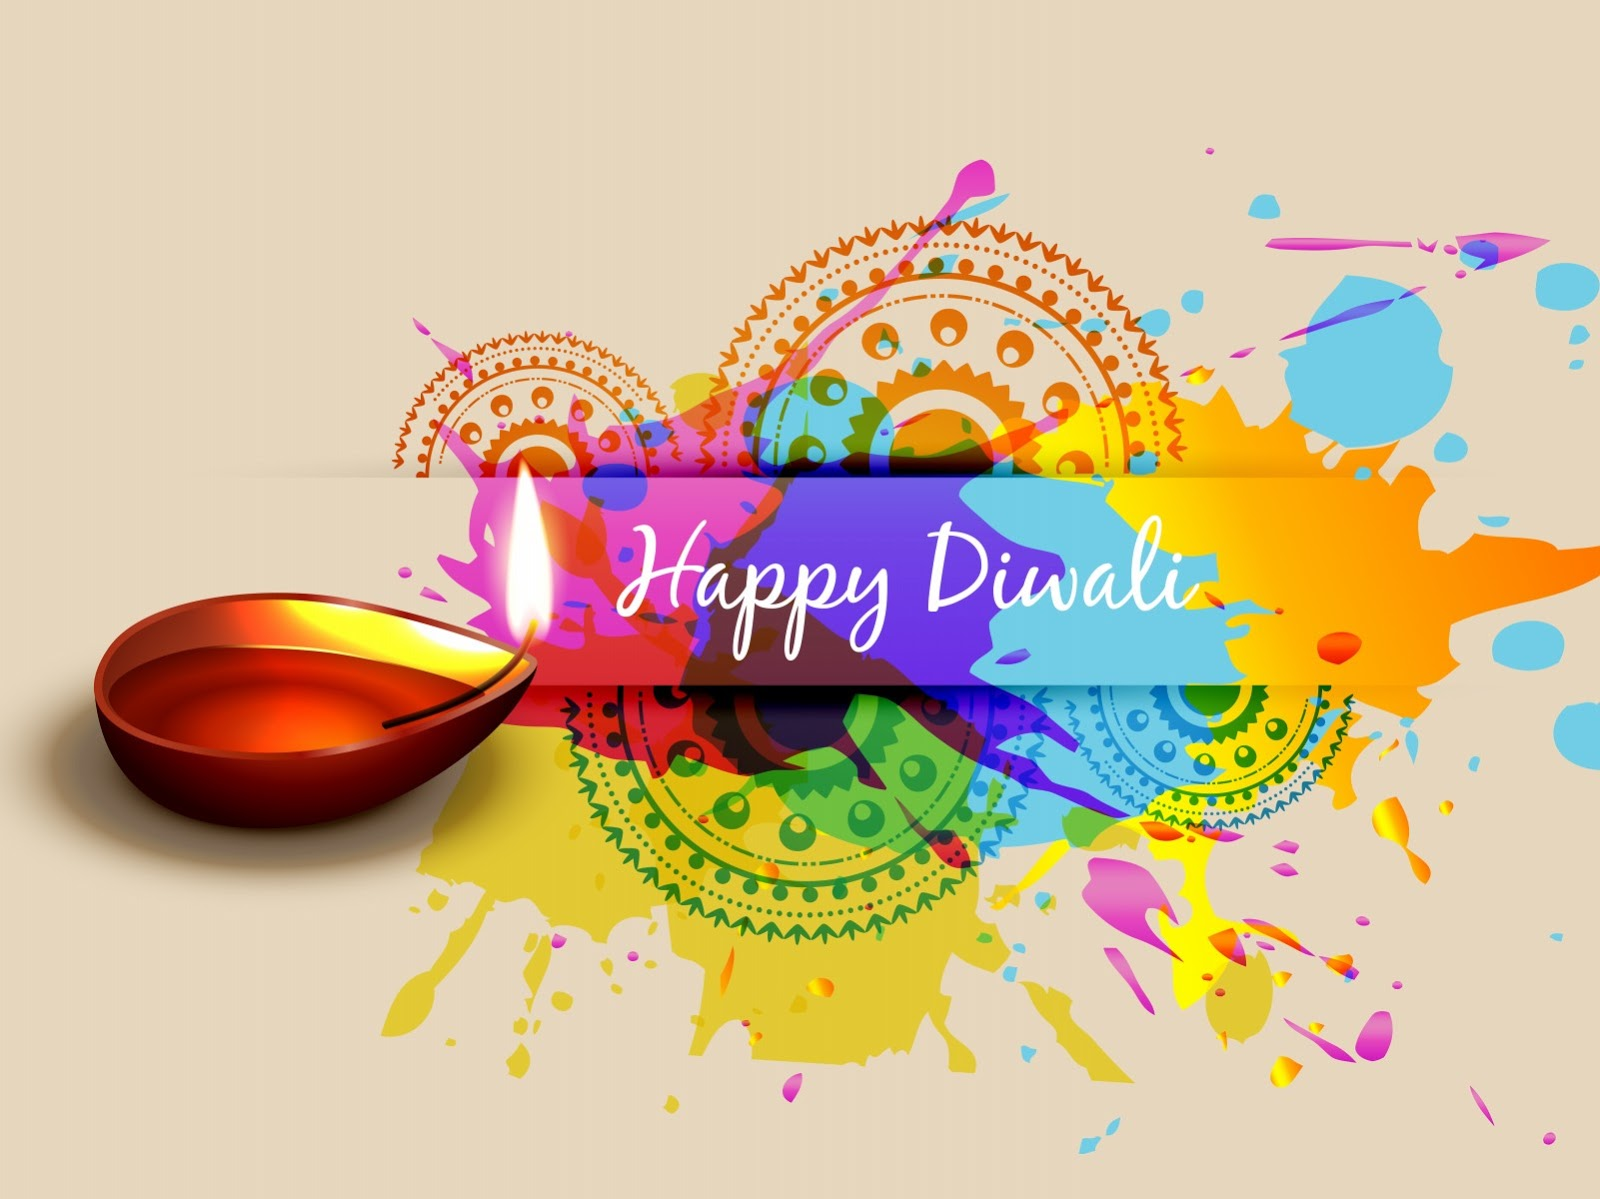 Top 15 diwali greeting messages for wishing in advance top 15 top 15 diwali greeting messages for wishing in advance top 15 diwali greeting messages in hindi m4hsunfo